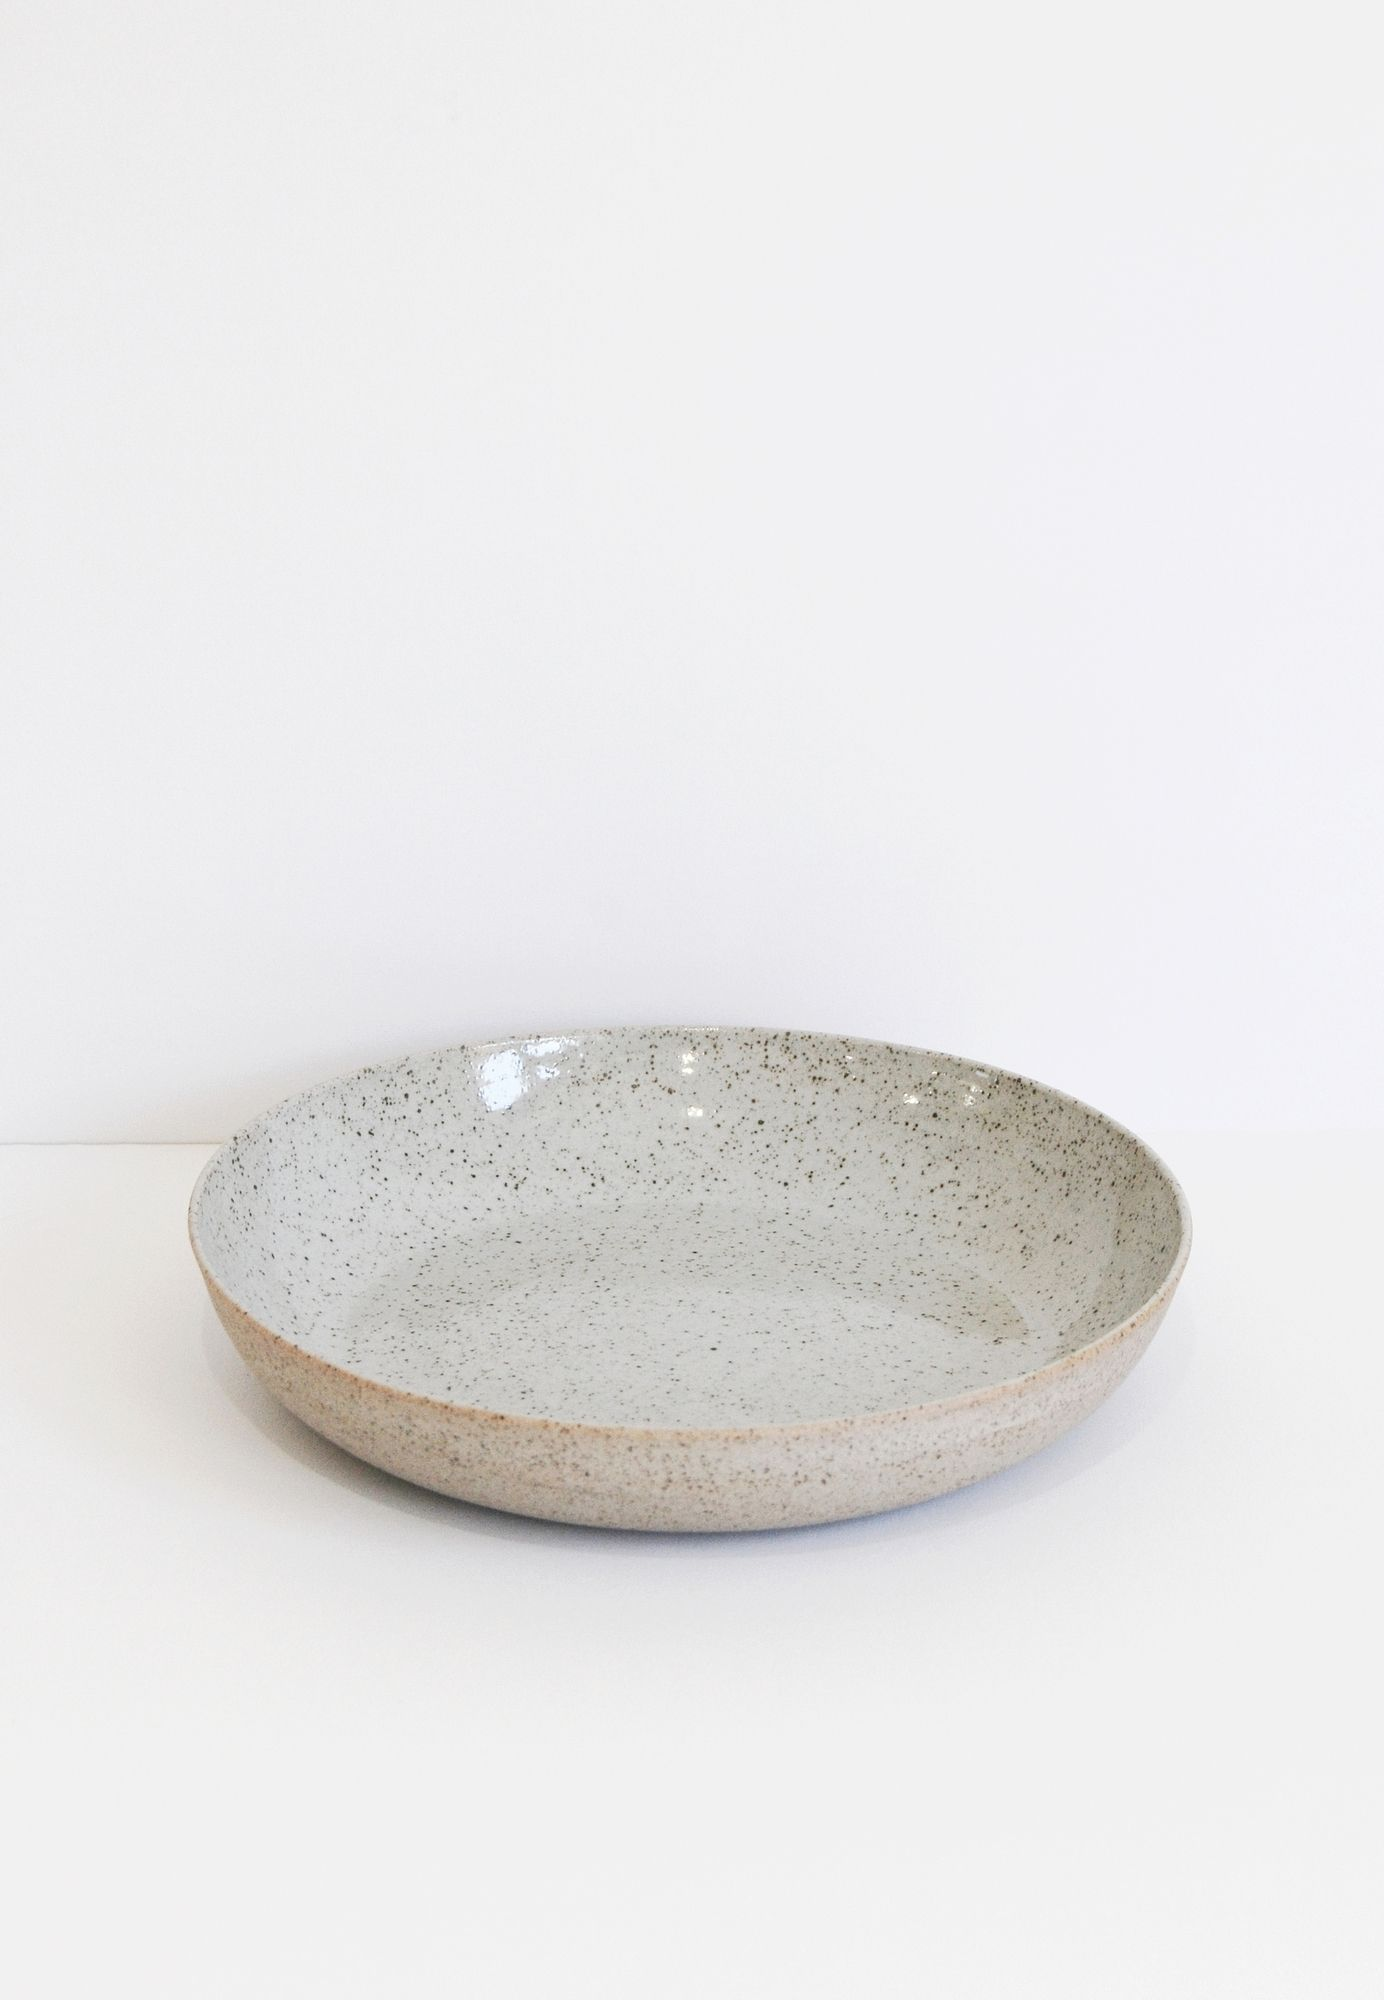 SUE PARASKEVA Natural Speckled Pasta Bowl - fen and ned